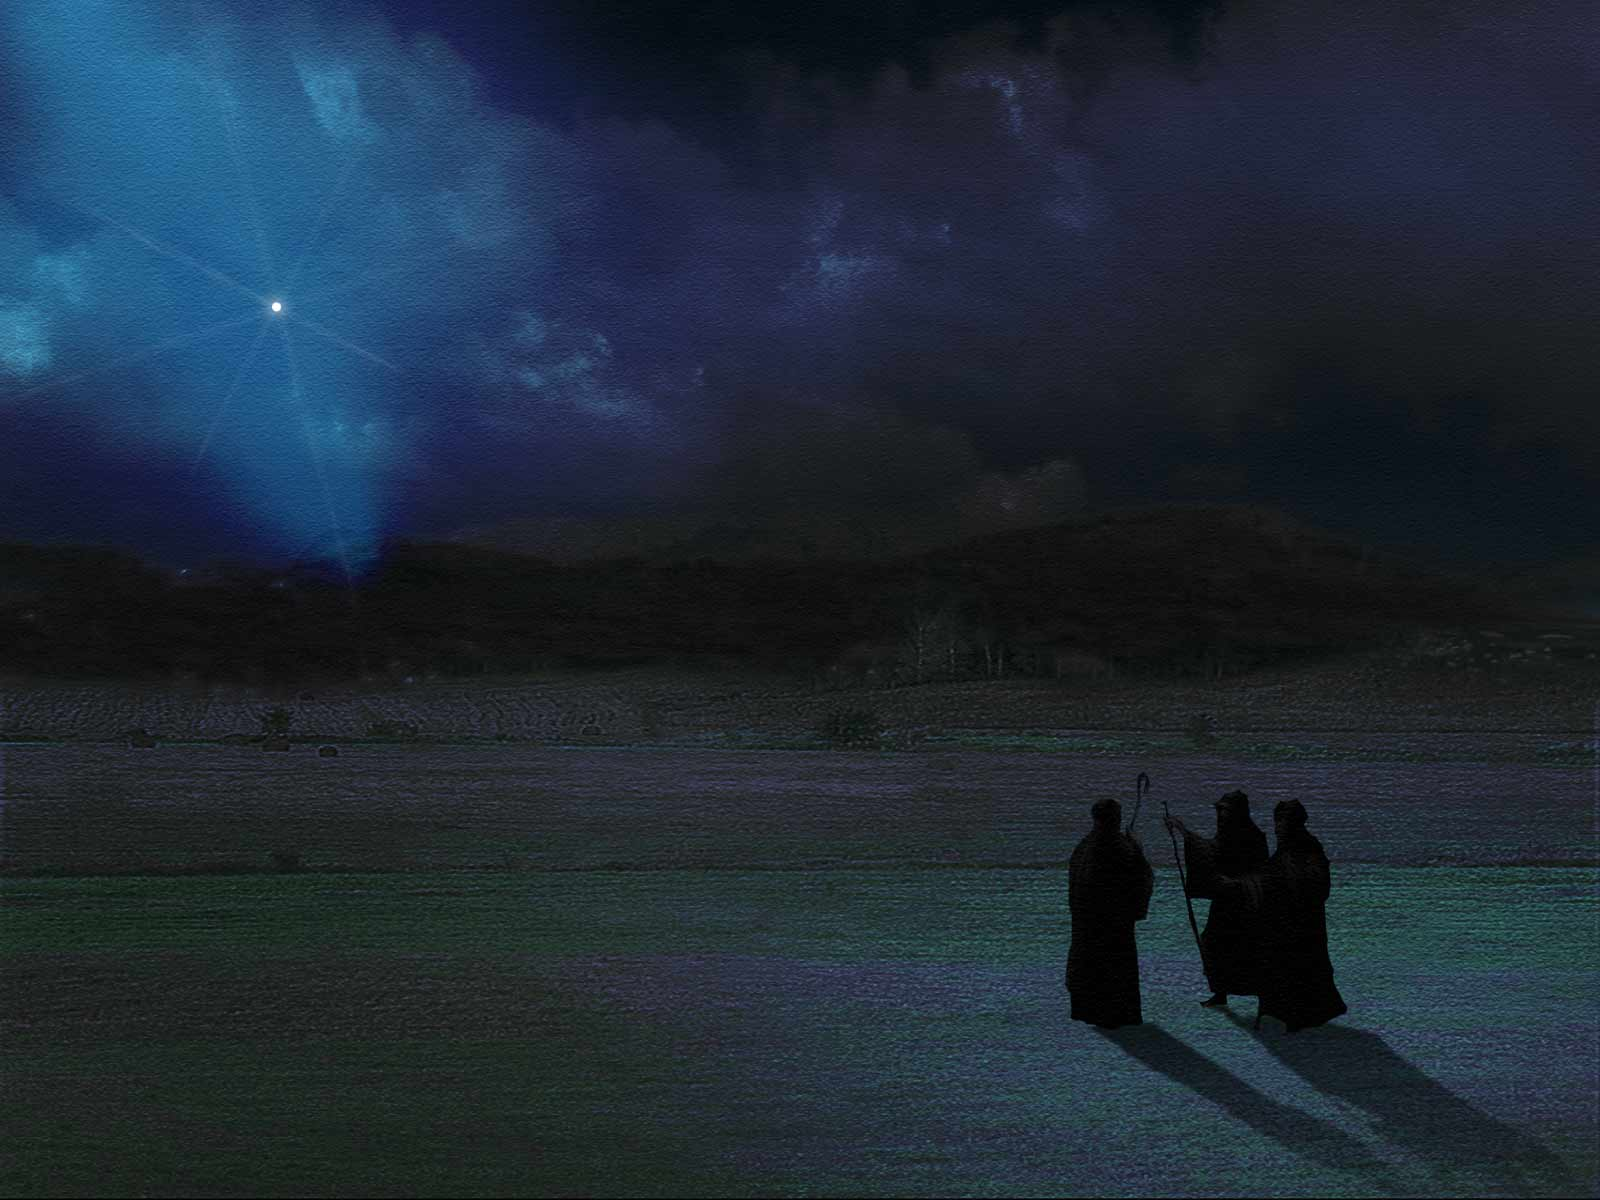 Shepherds following the star. Source: http://wallpapercave.com/w/bFANYYR